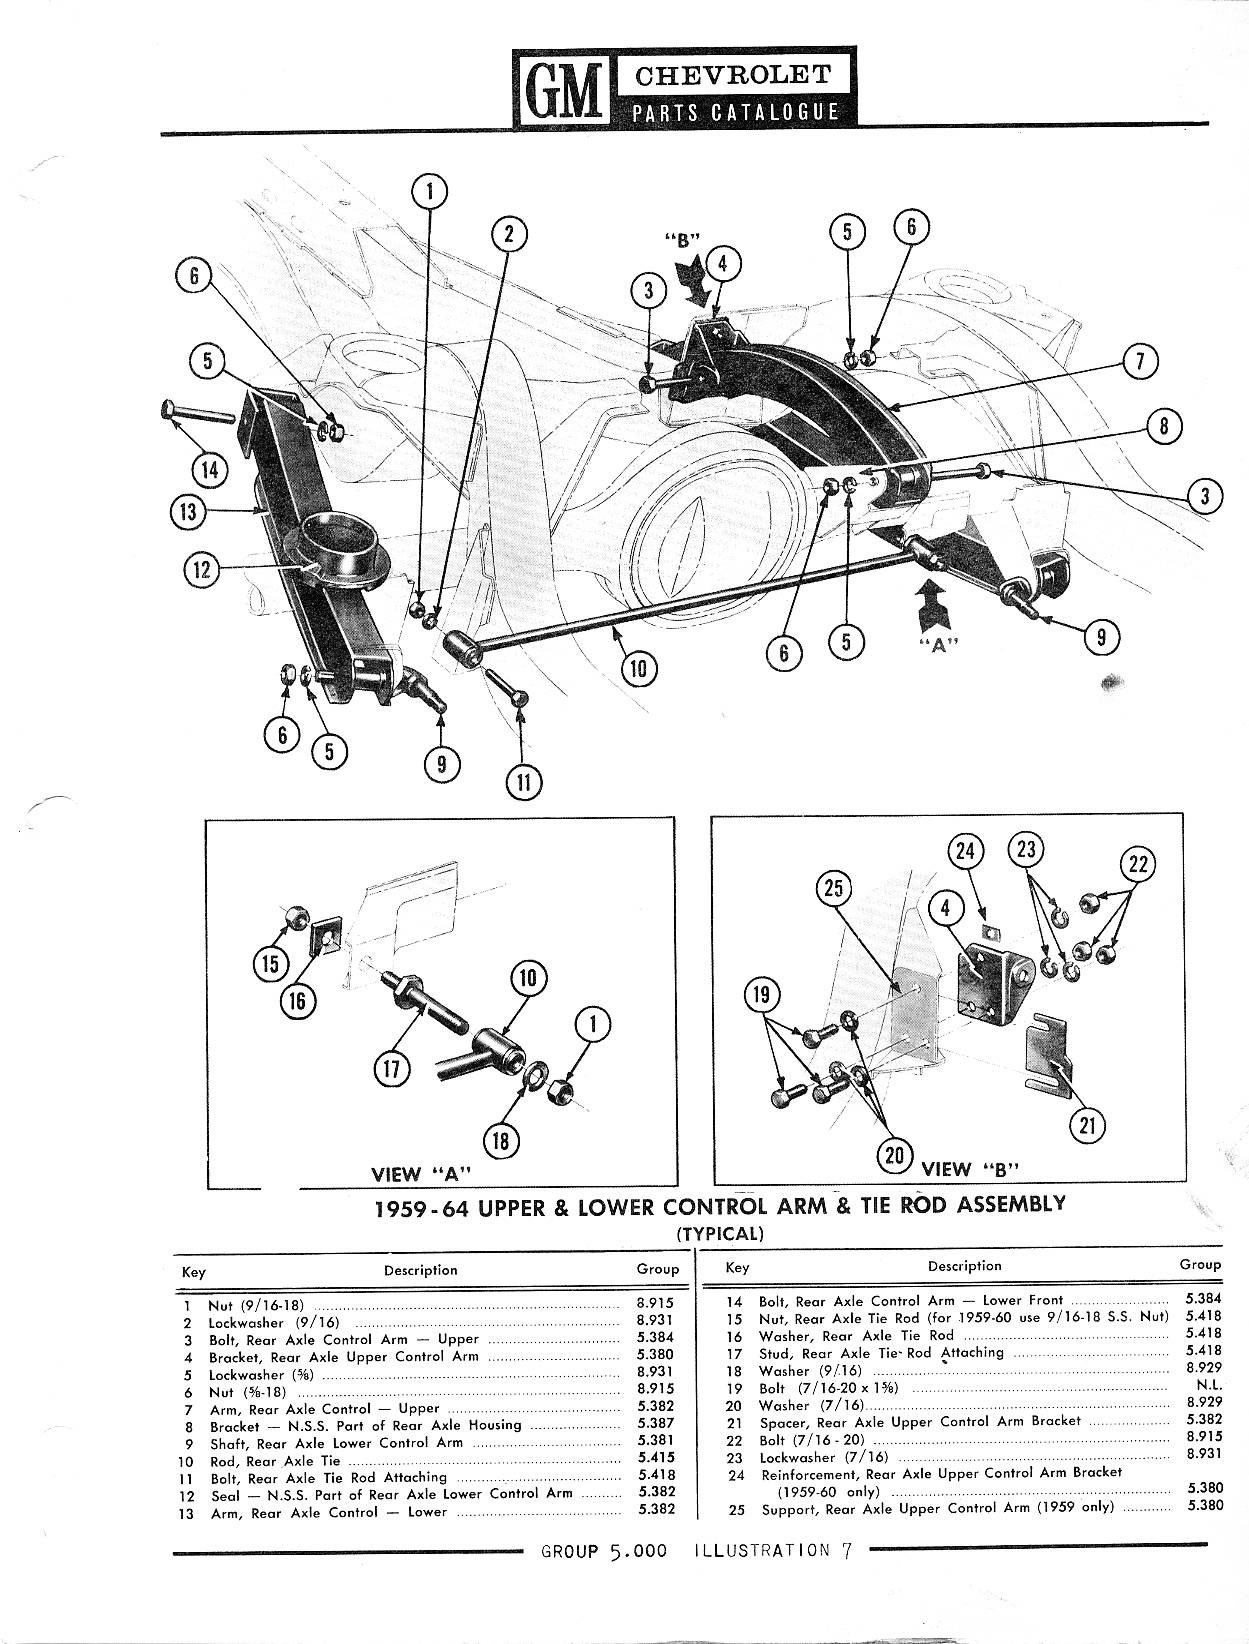 19 Mini Cooper Engine Parts Diagram in addition Image24 moreover Gm Hinge 25978498 additionally Gm Glove Box Door 95051966 moreover Subaru America Parts Catalog. on 58 chevy parts catalog